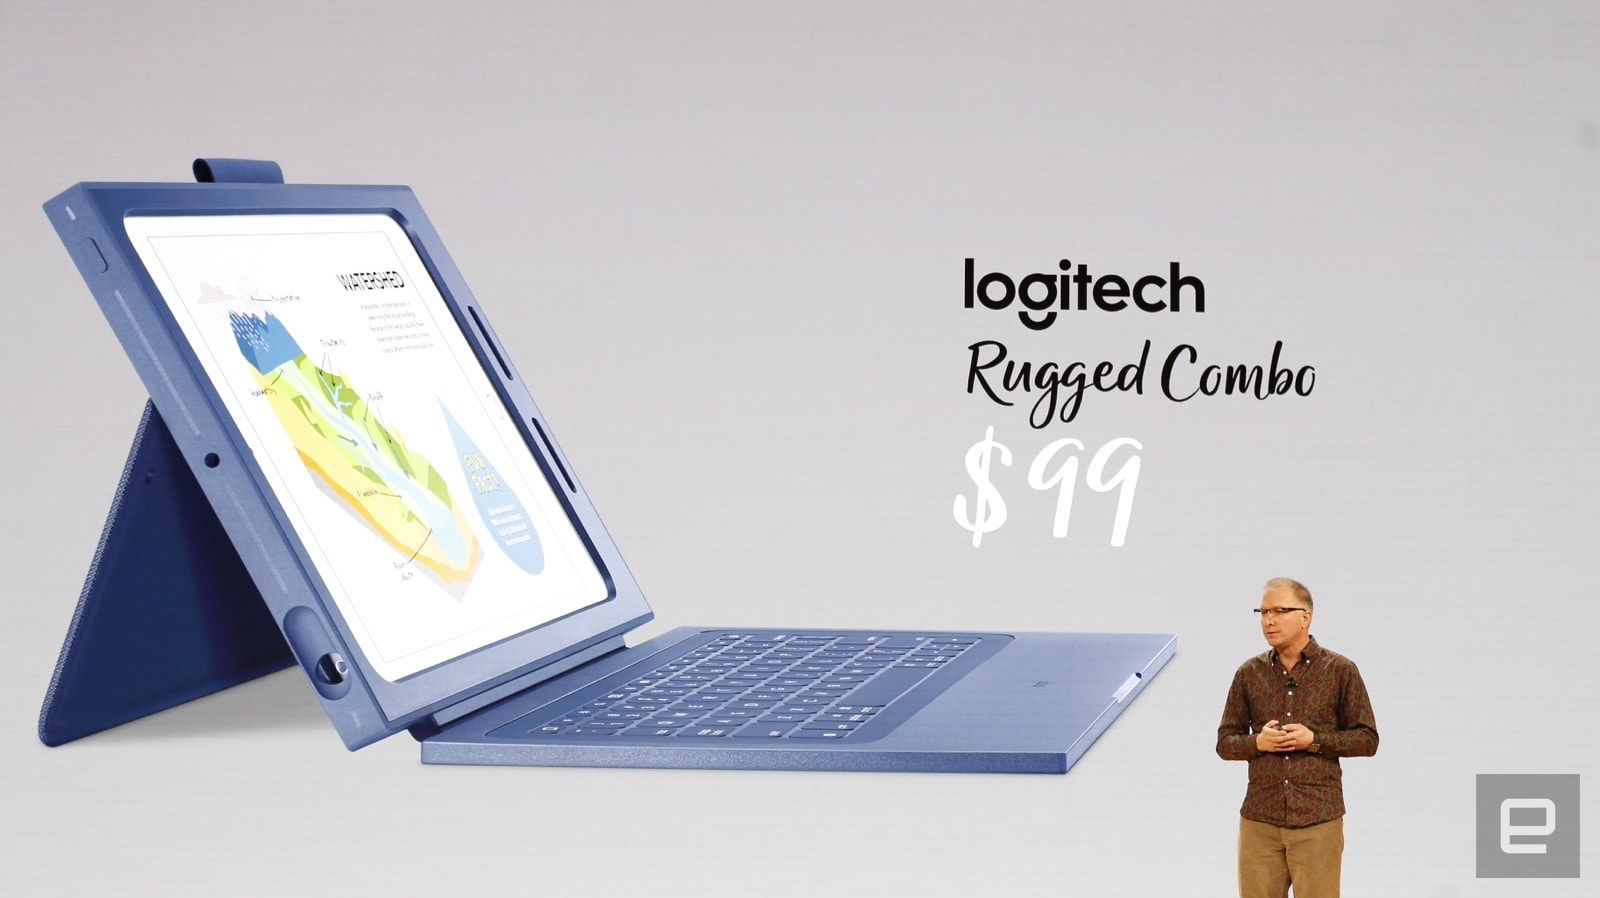 e7d7fe2346d ... find educational Chromebooks under $300), but Apple and Logitech are no  doubt betting that the touch-native interface will be worth it in some  classes.